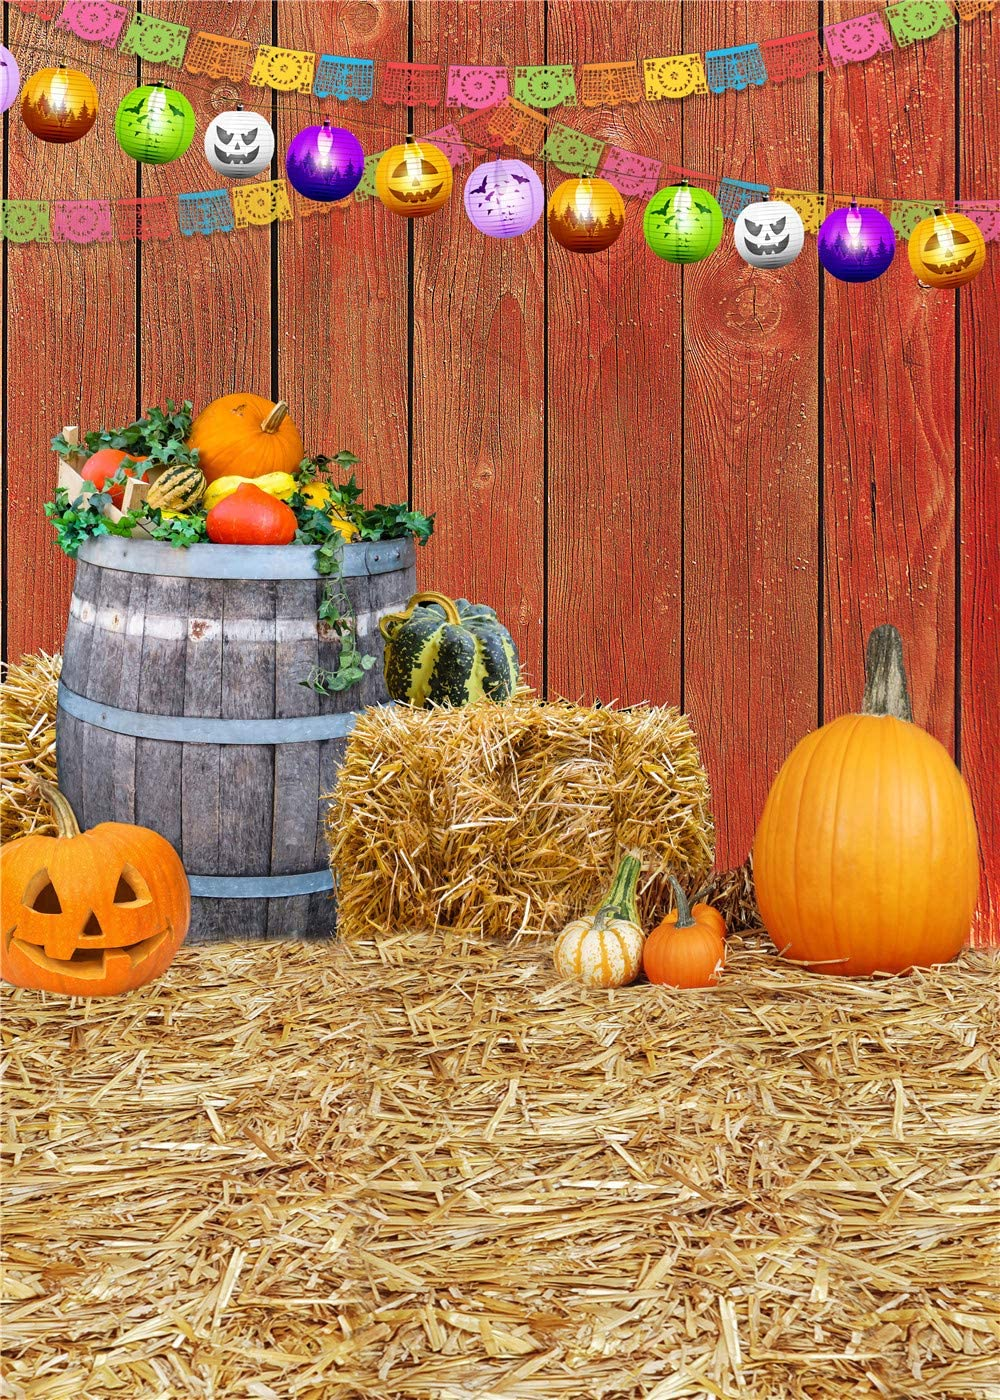 LB Fall Thanksgiving Backdrop Farmhouse Harvest Season Pumpkin Straw Vintage Barn Wood Photography Background for Kids Adult Portrait Photoshoot Props 6x9ft Fabric Seamless,Washable